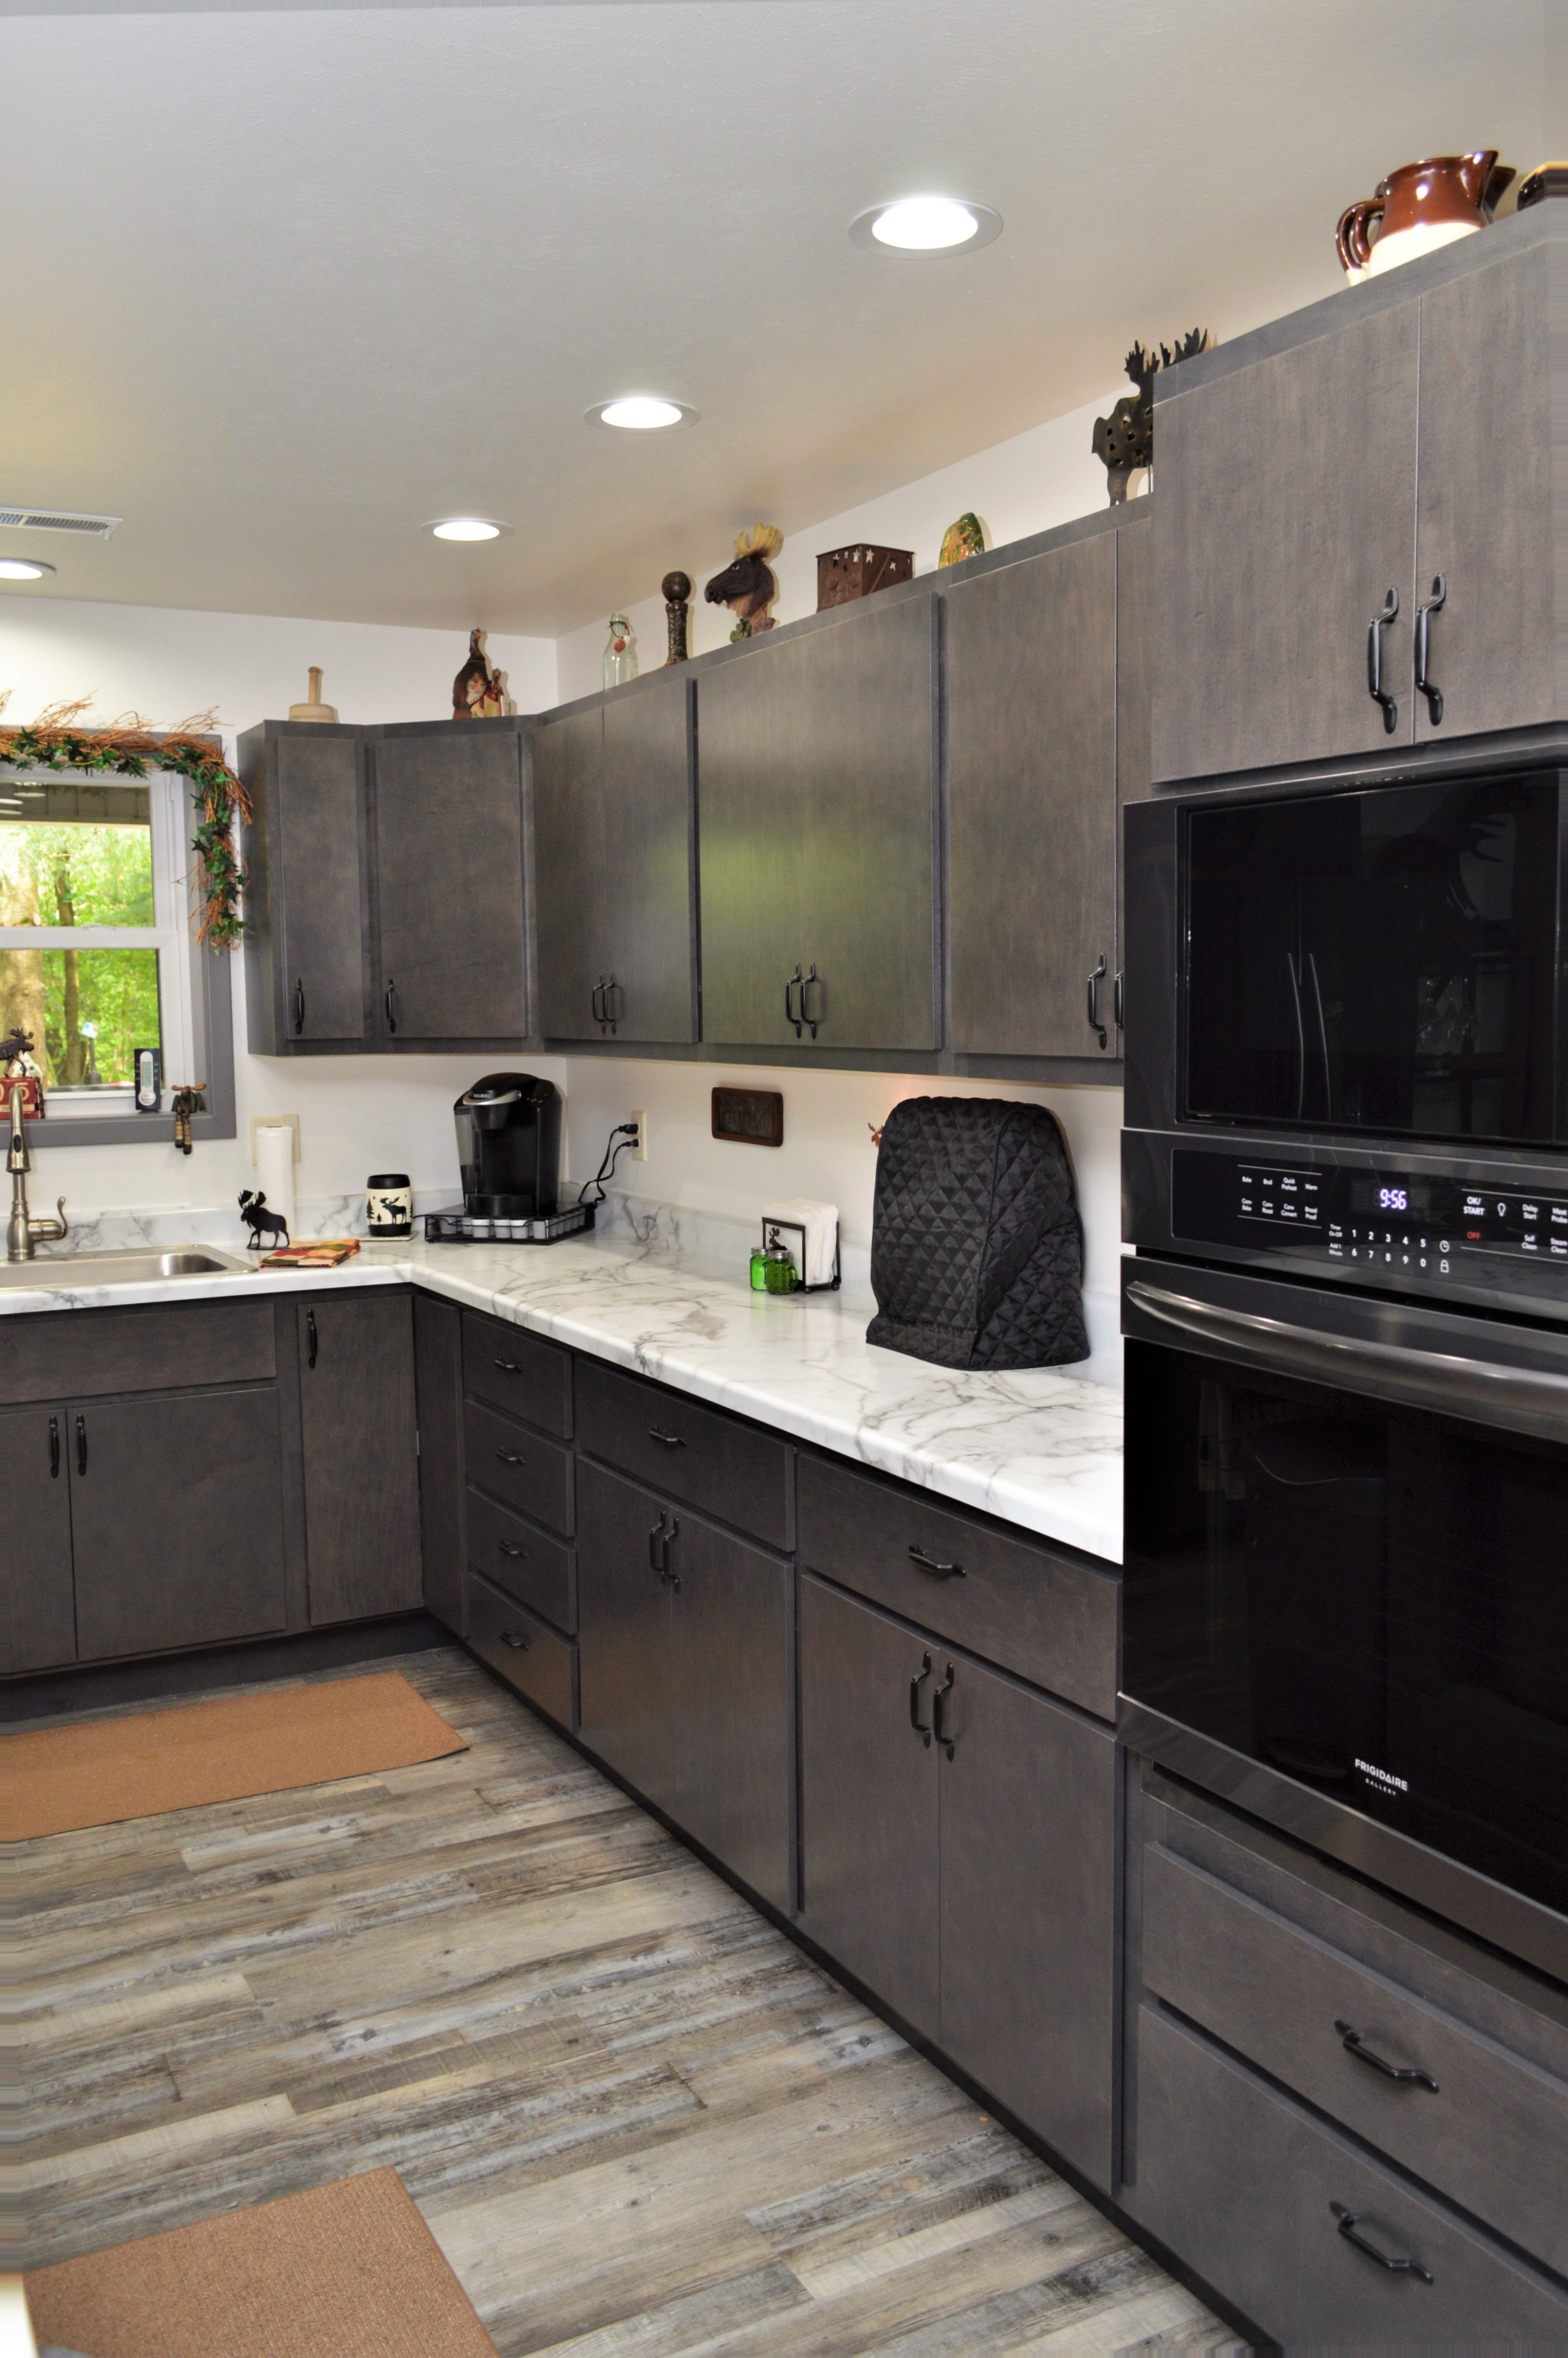 Bailey S Cabinets Baileytown Usa Select Maple Slate Finish Mission Standard Overlay Door Style In 2020 Maple Cabinets Cabinet Cabinetry